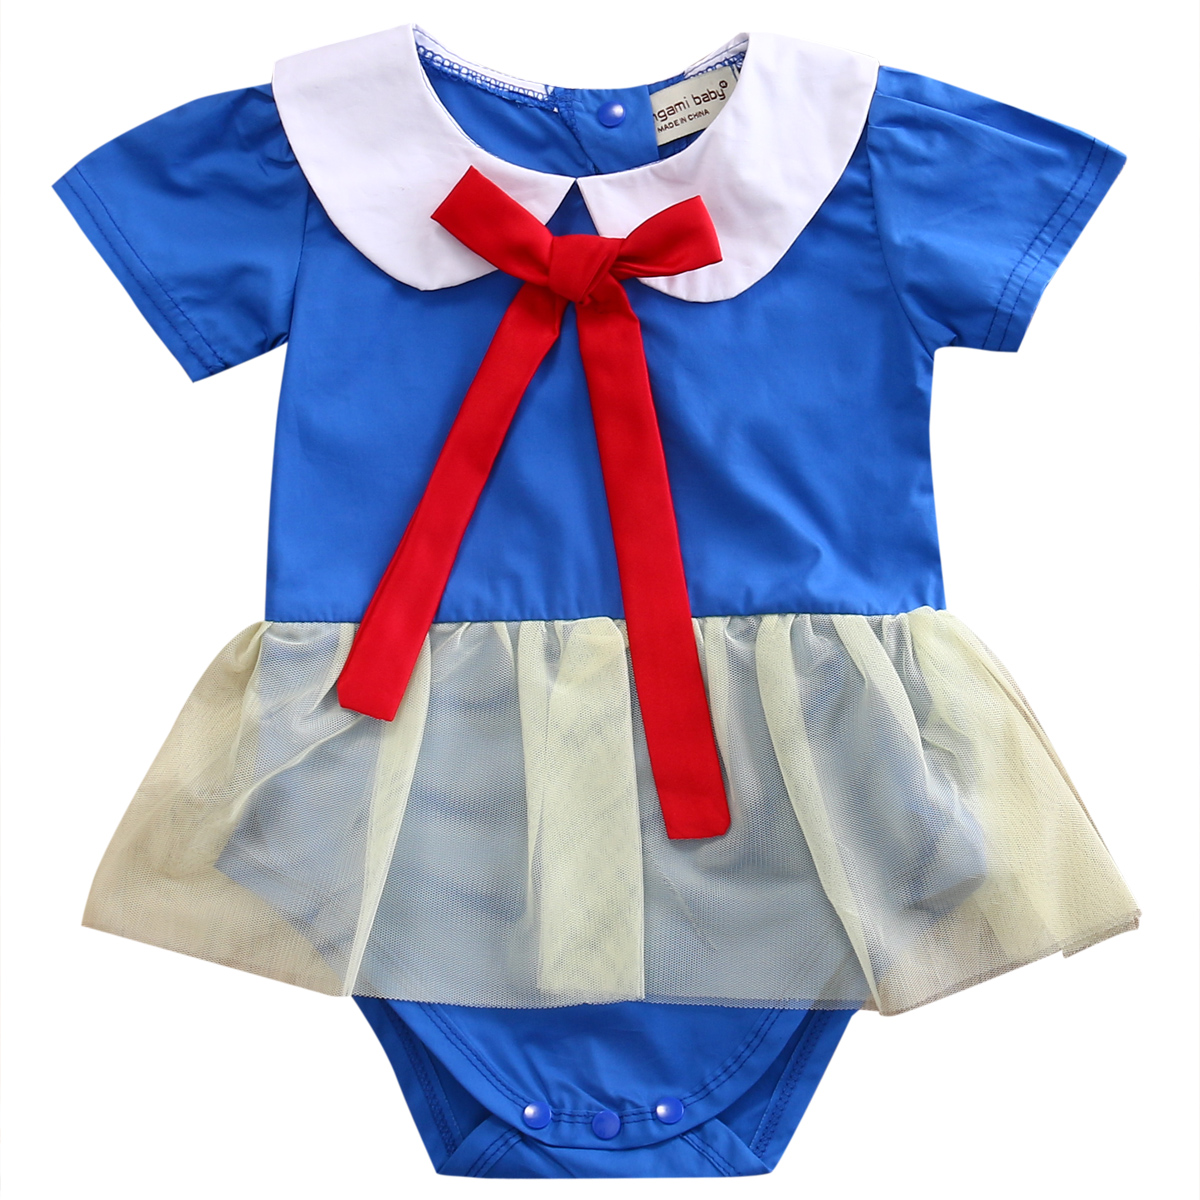 Newborn Infant Toddler Baby Girl Tutu Romper Dress Summer Tie Style Lace Cute Jumpsuit Outfits Clothes0-24 M